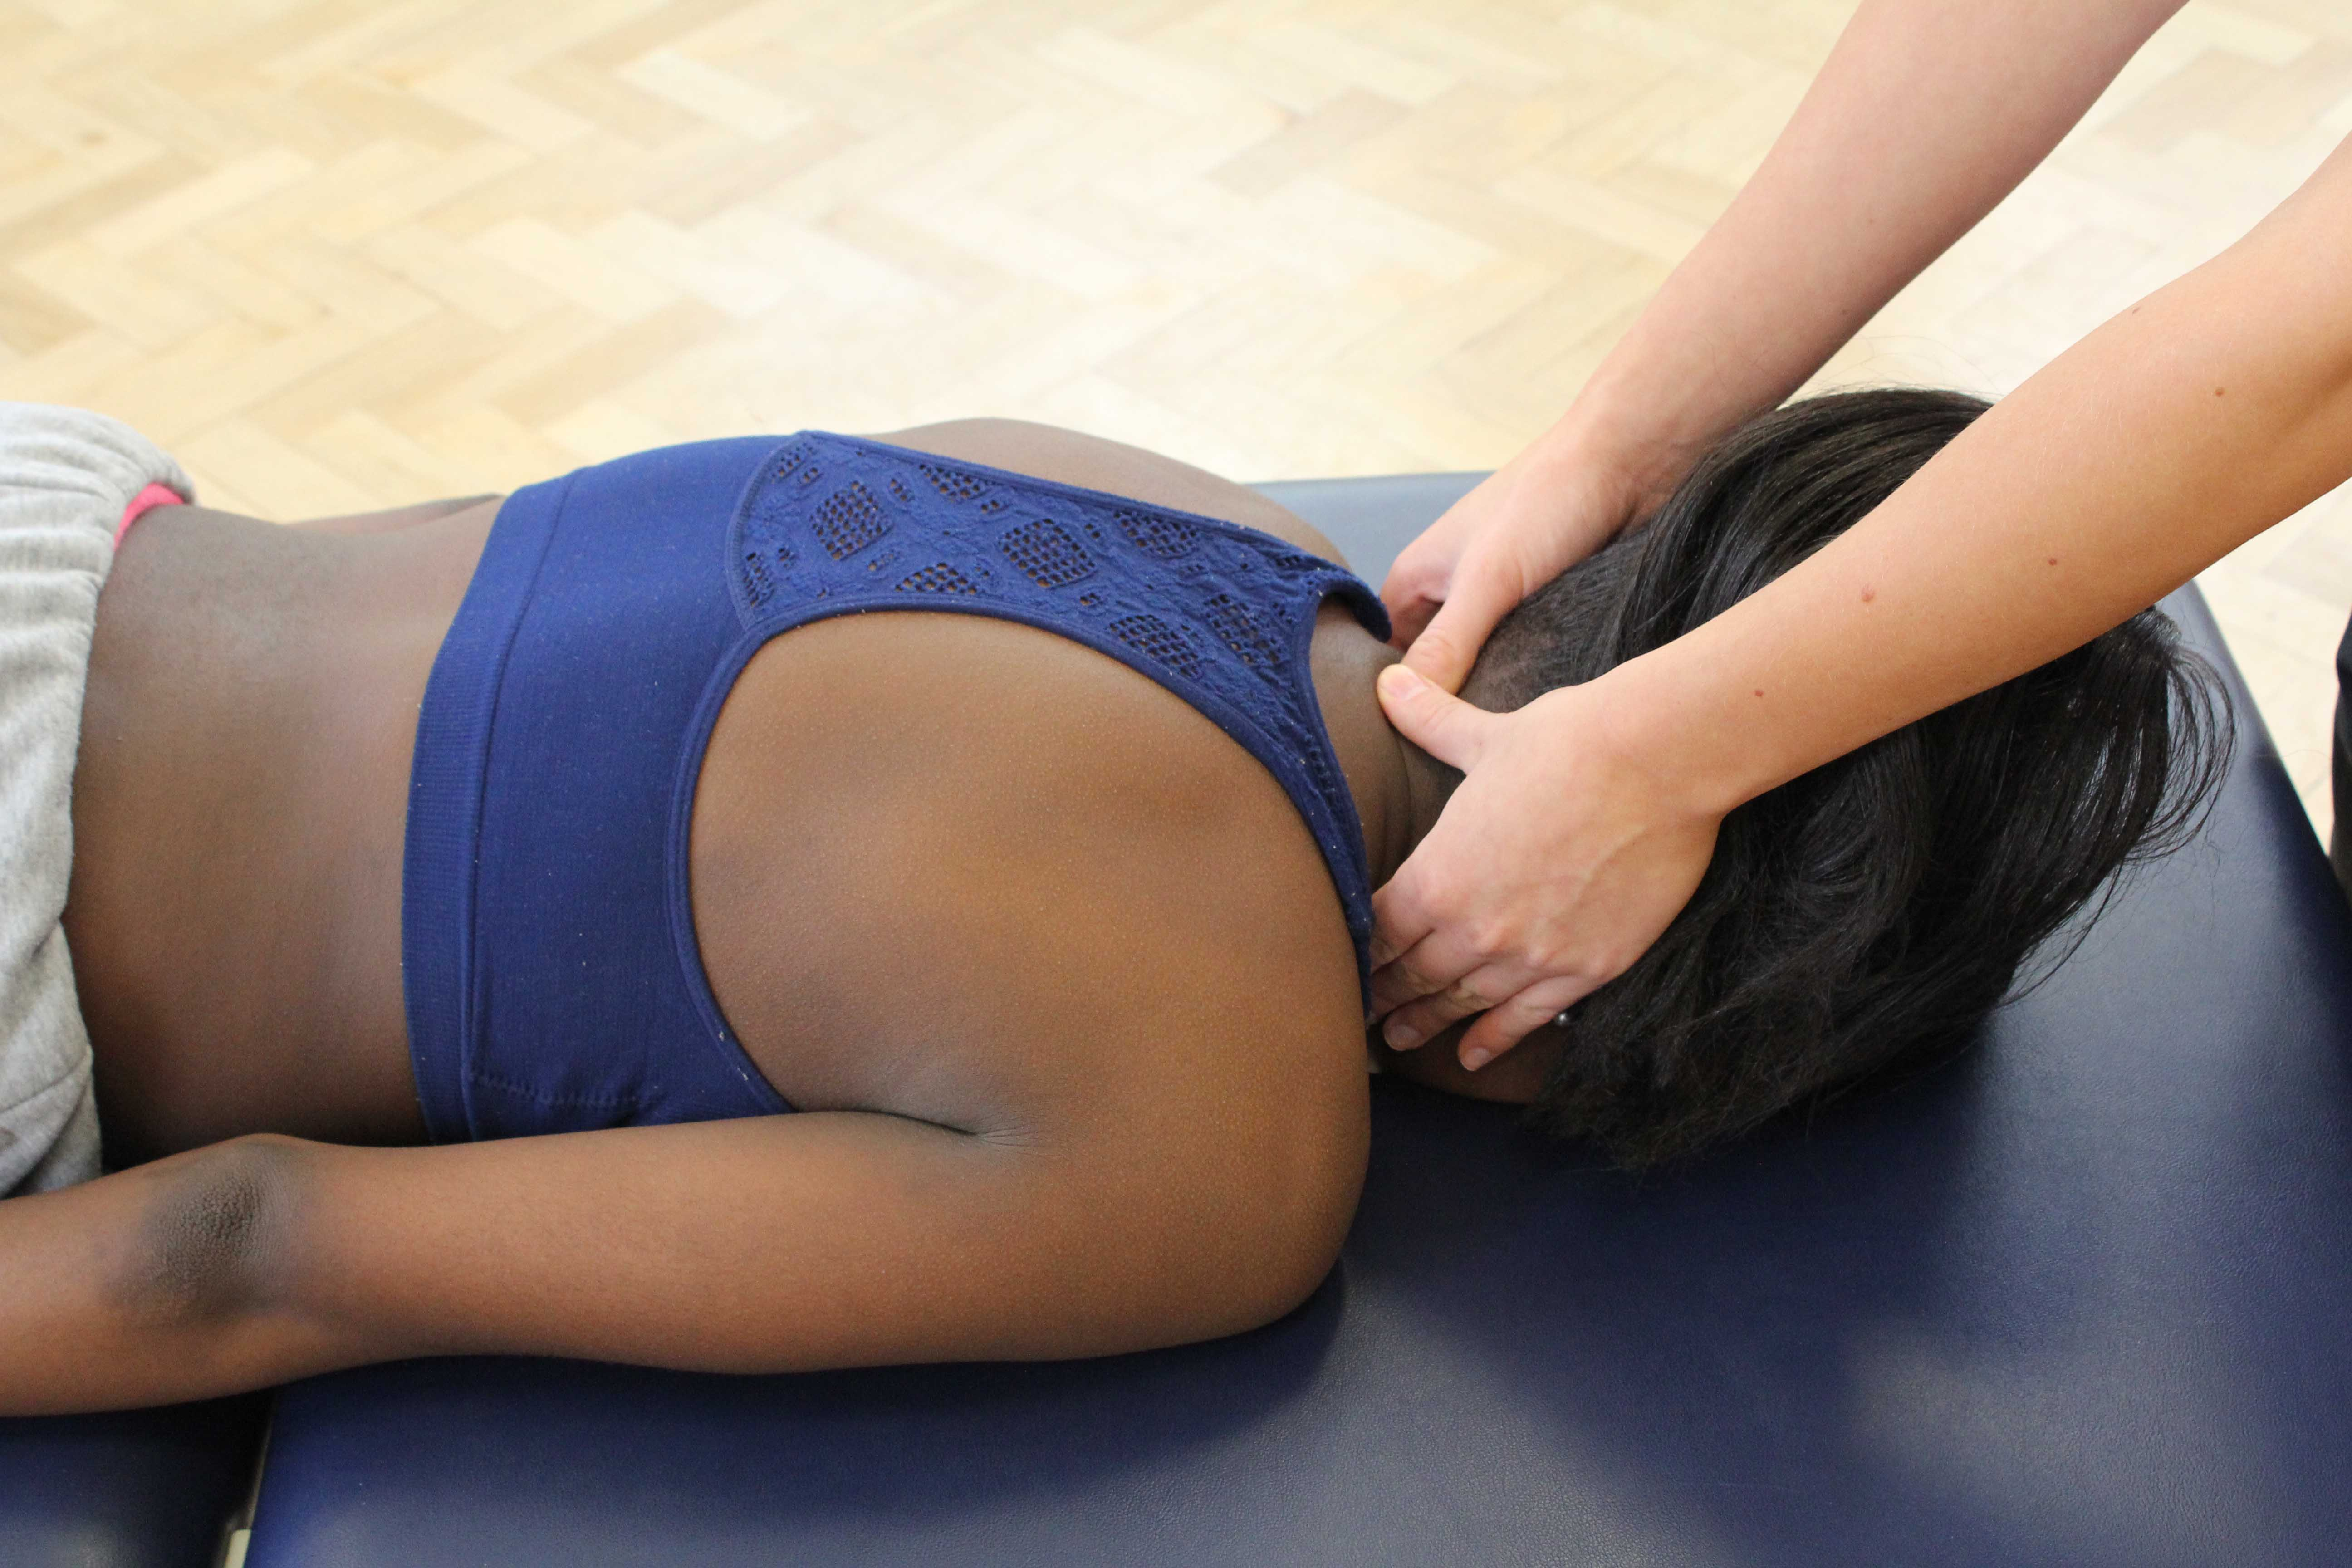 Mobilisations of the cervical spine to relieve pain and stiffness